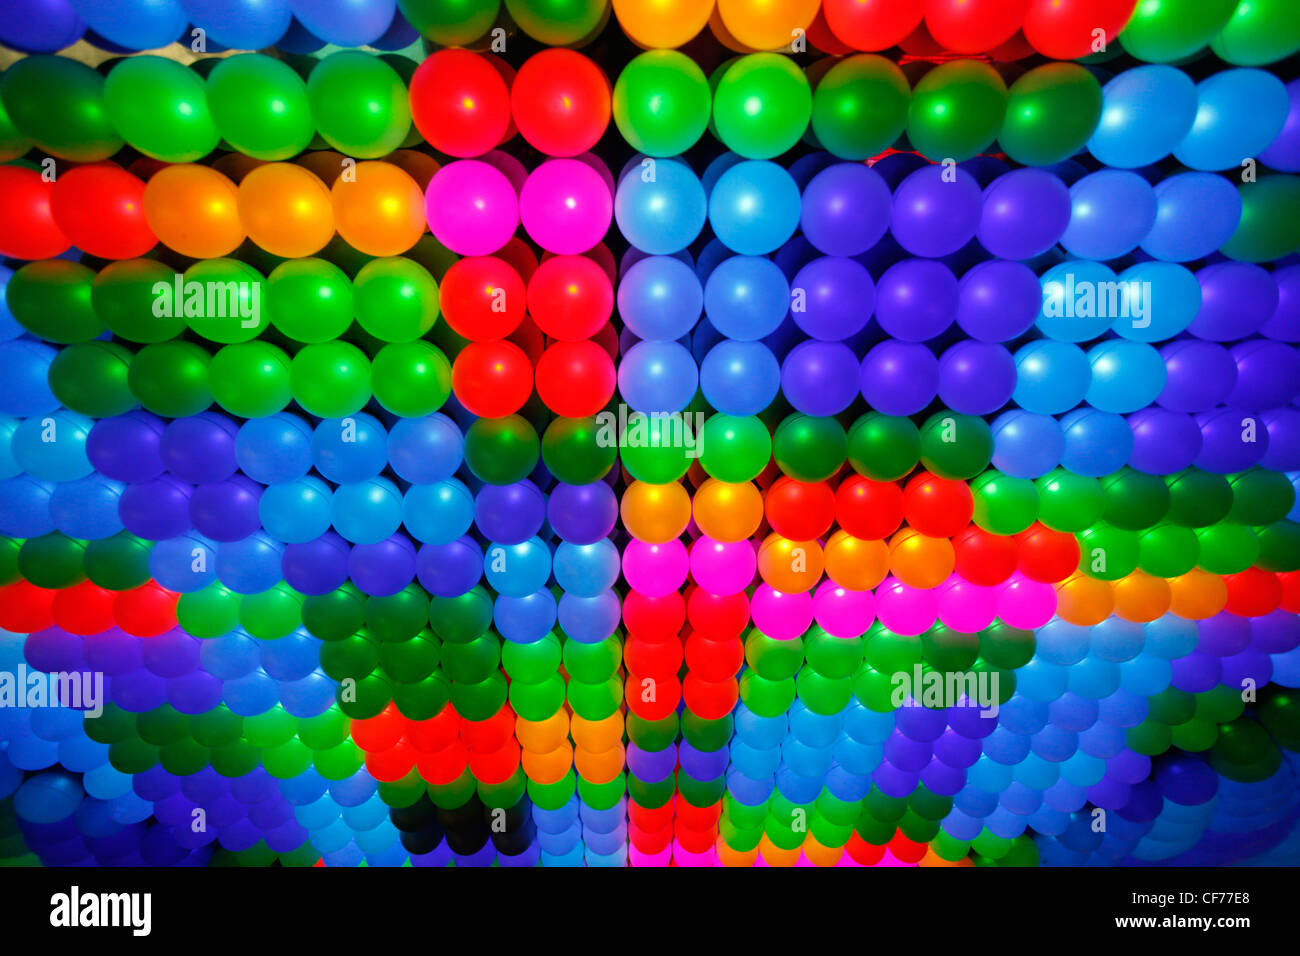 Multi-coloured patterns of LED lights in a lighting display Stock Photo